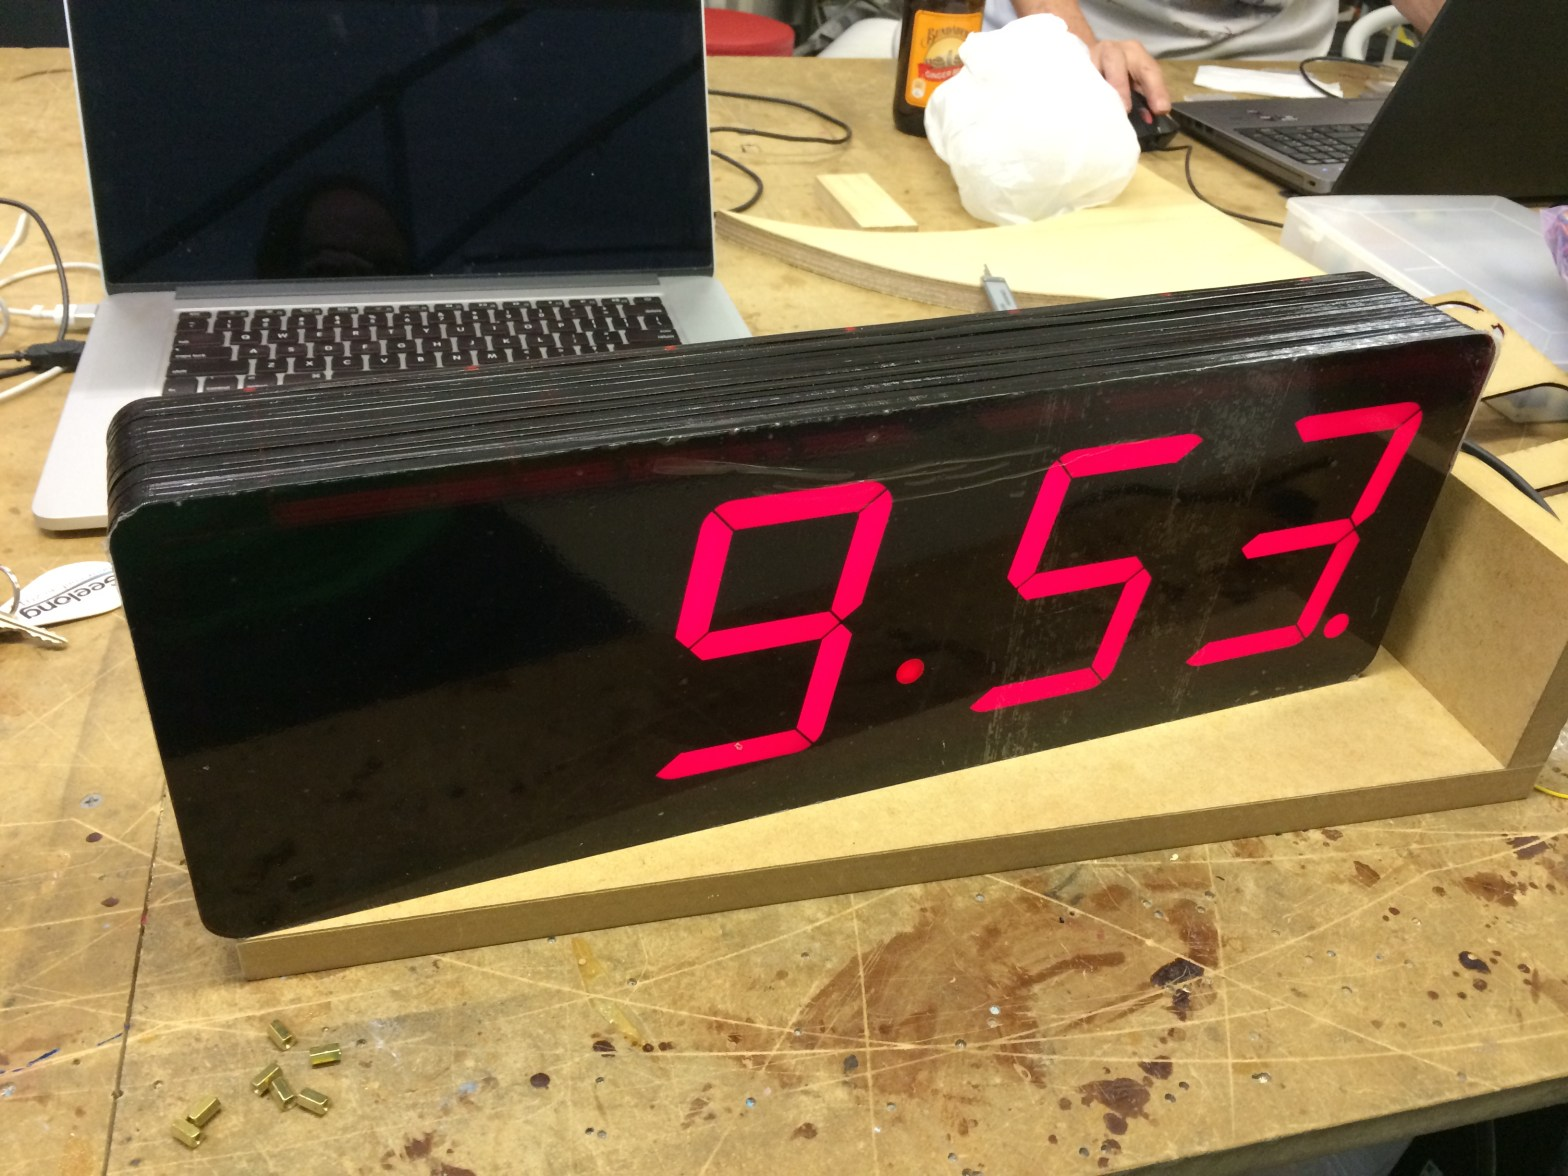 large 7 segment display clock showing 9:53 time